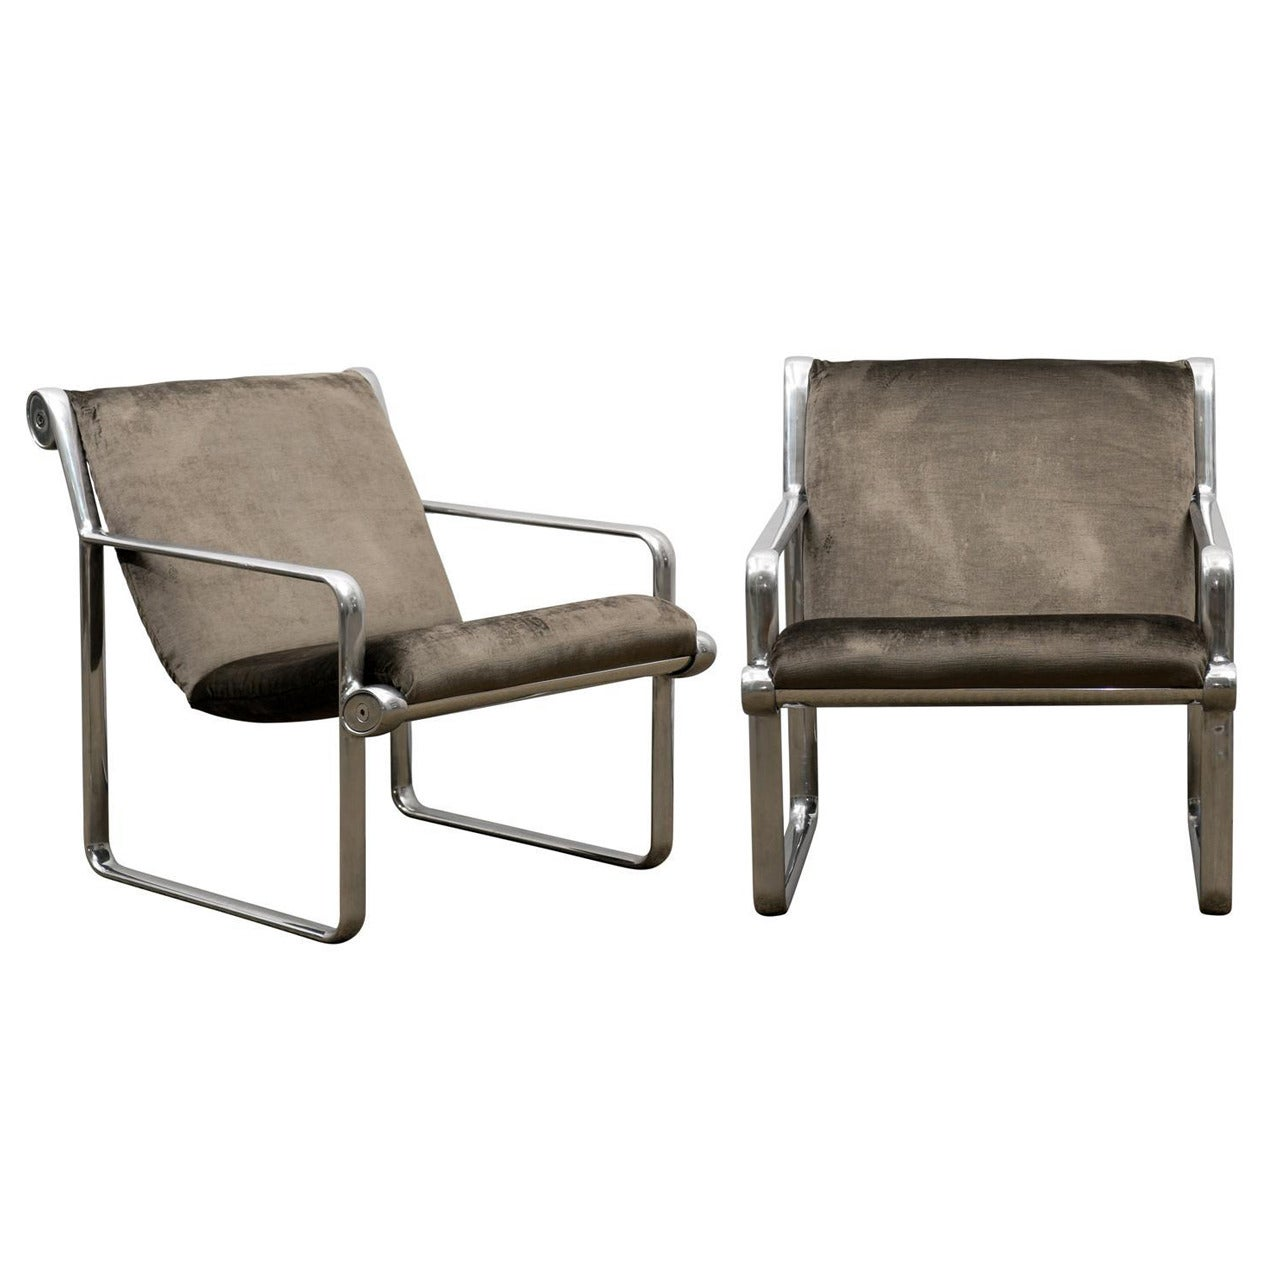 Rare Pair of Aluminum Lounge Chairs by Hannah/Morrison for Knoll